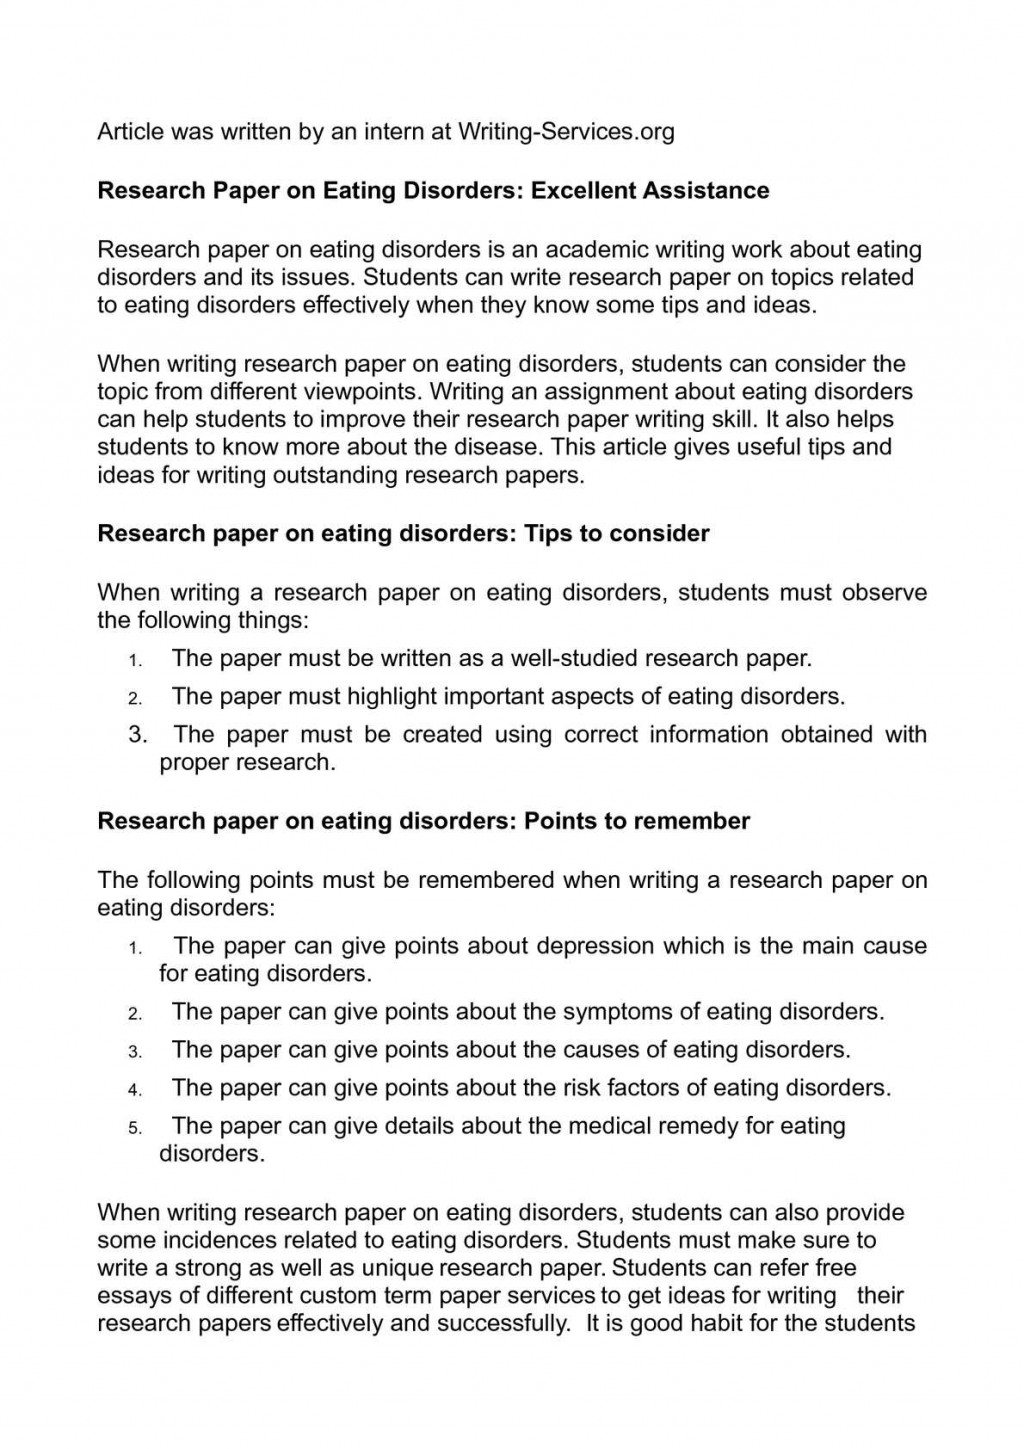 001 Research Paper P1 Free Papers On Eating Wondrous Disorders Large